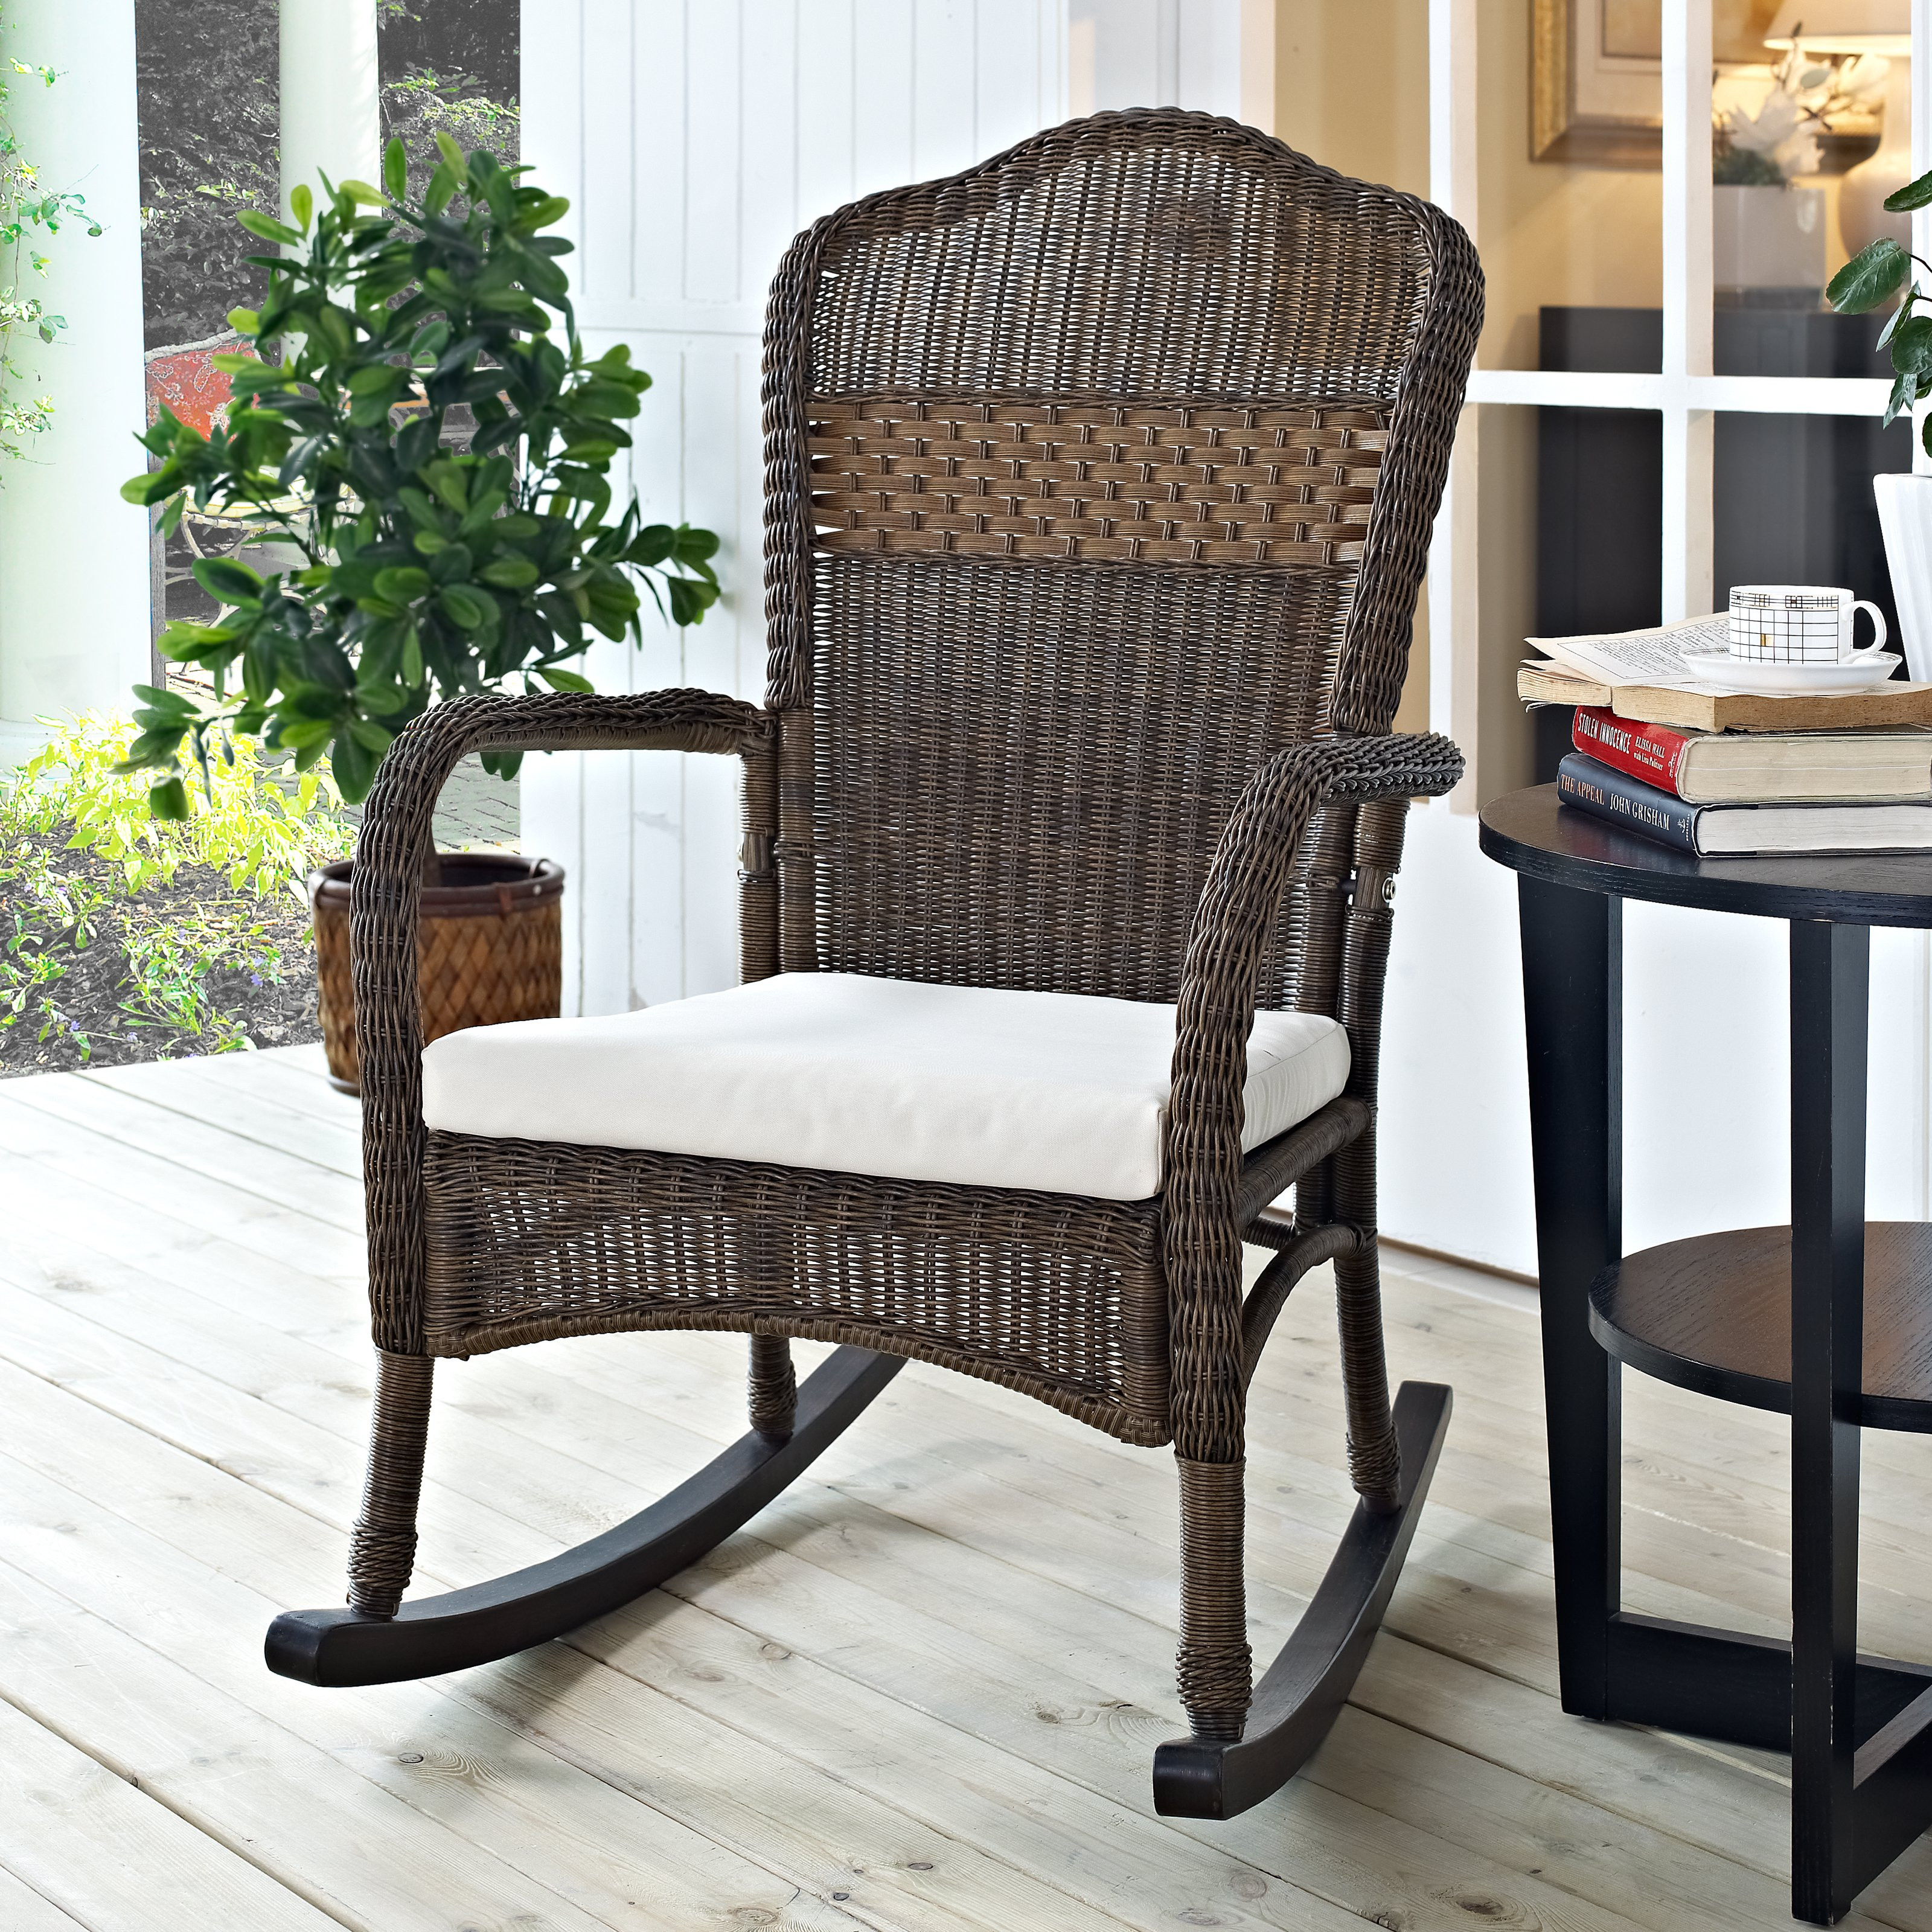 Best ideas about Outdoor Rocking Chairs . Save or Pin Coral Coast Mocha Resin Wicker Rocking Chair with Beige Now.